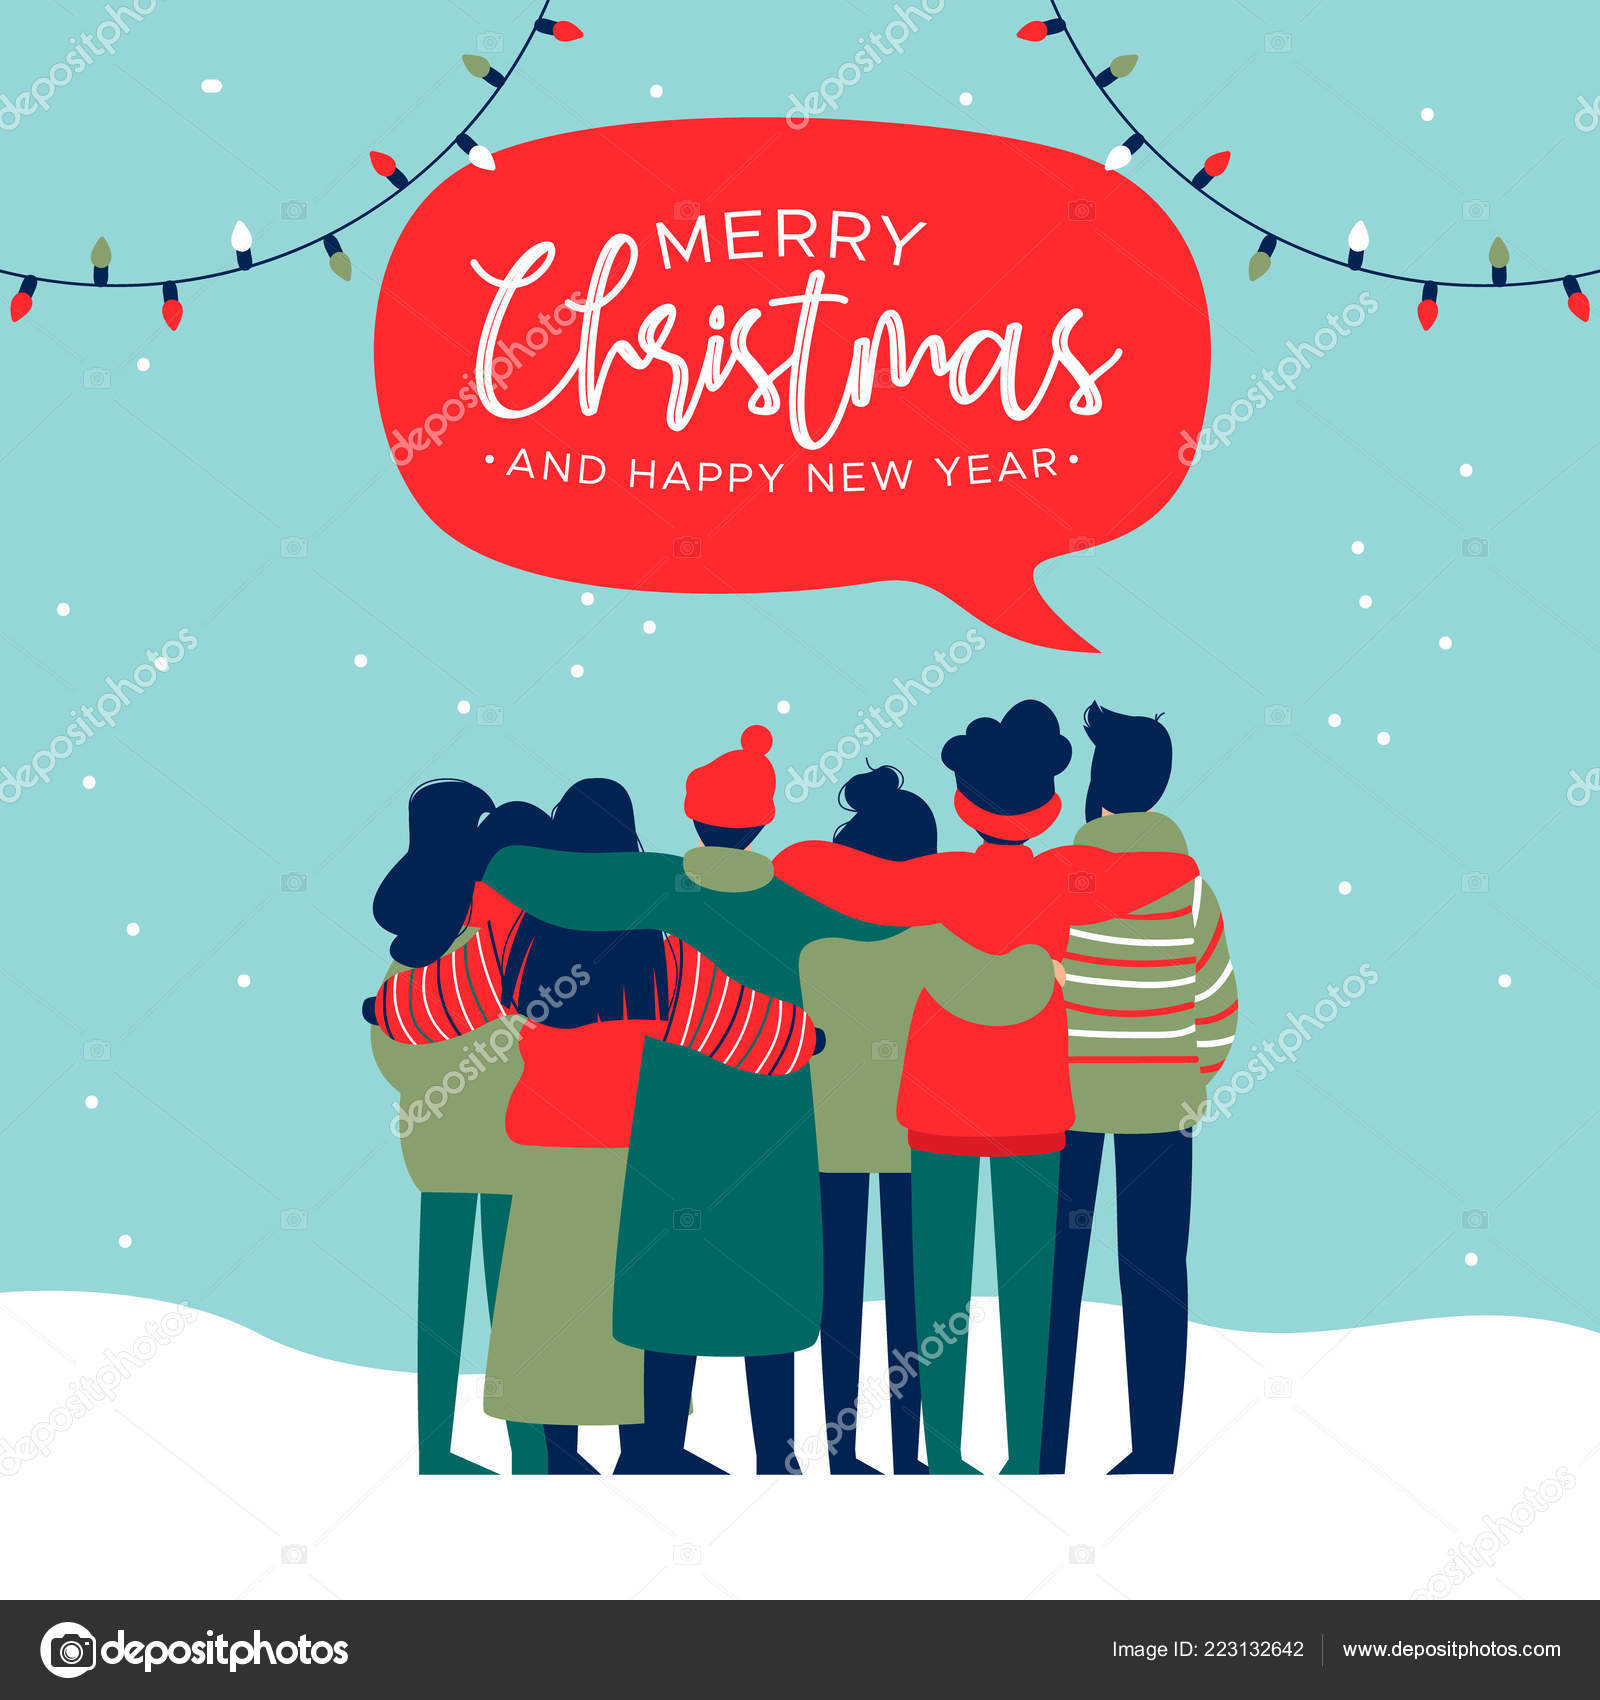 merry christmas and happy new year greeting card illustration of young people friend group hugging together at holiday party diverse culture friends team